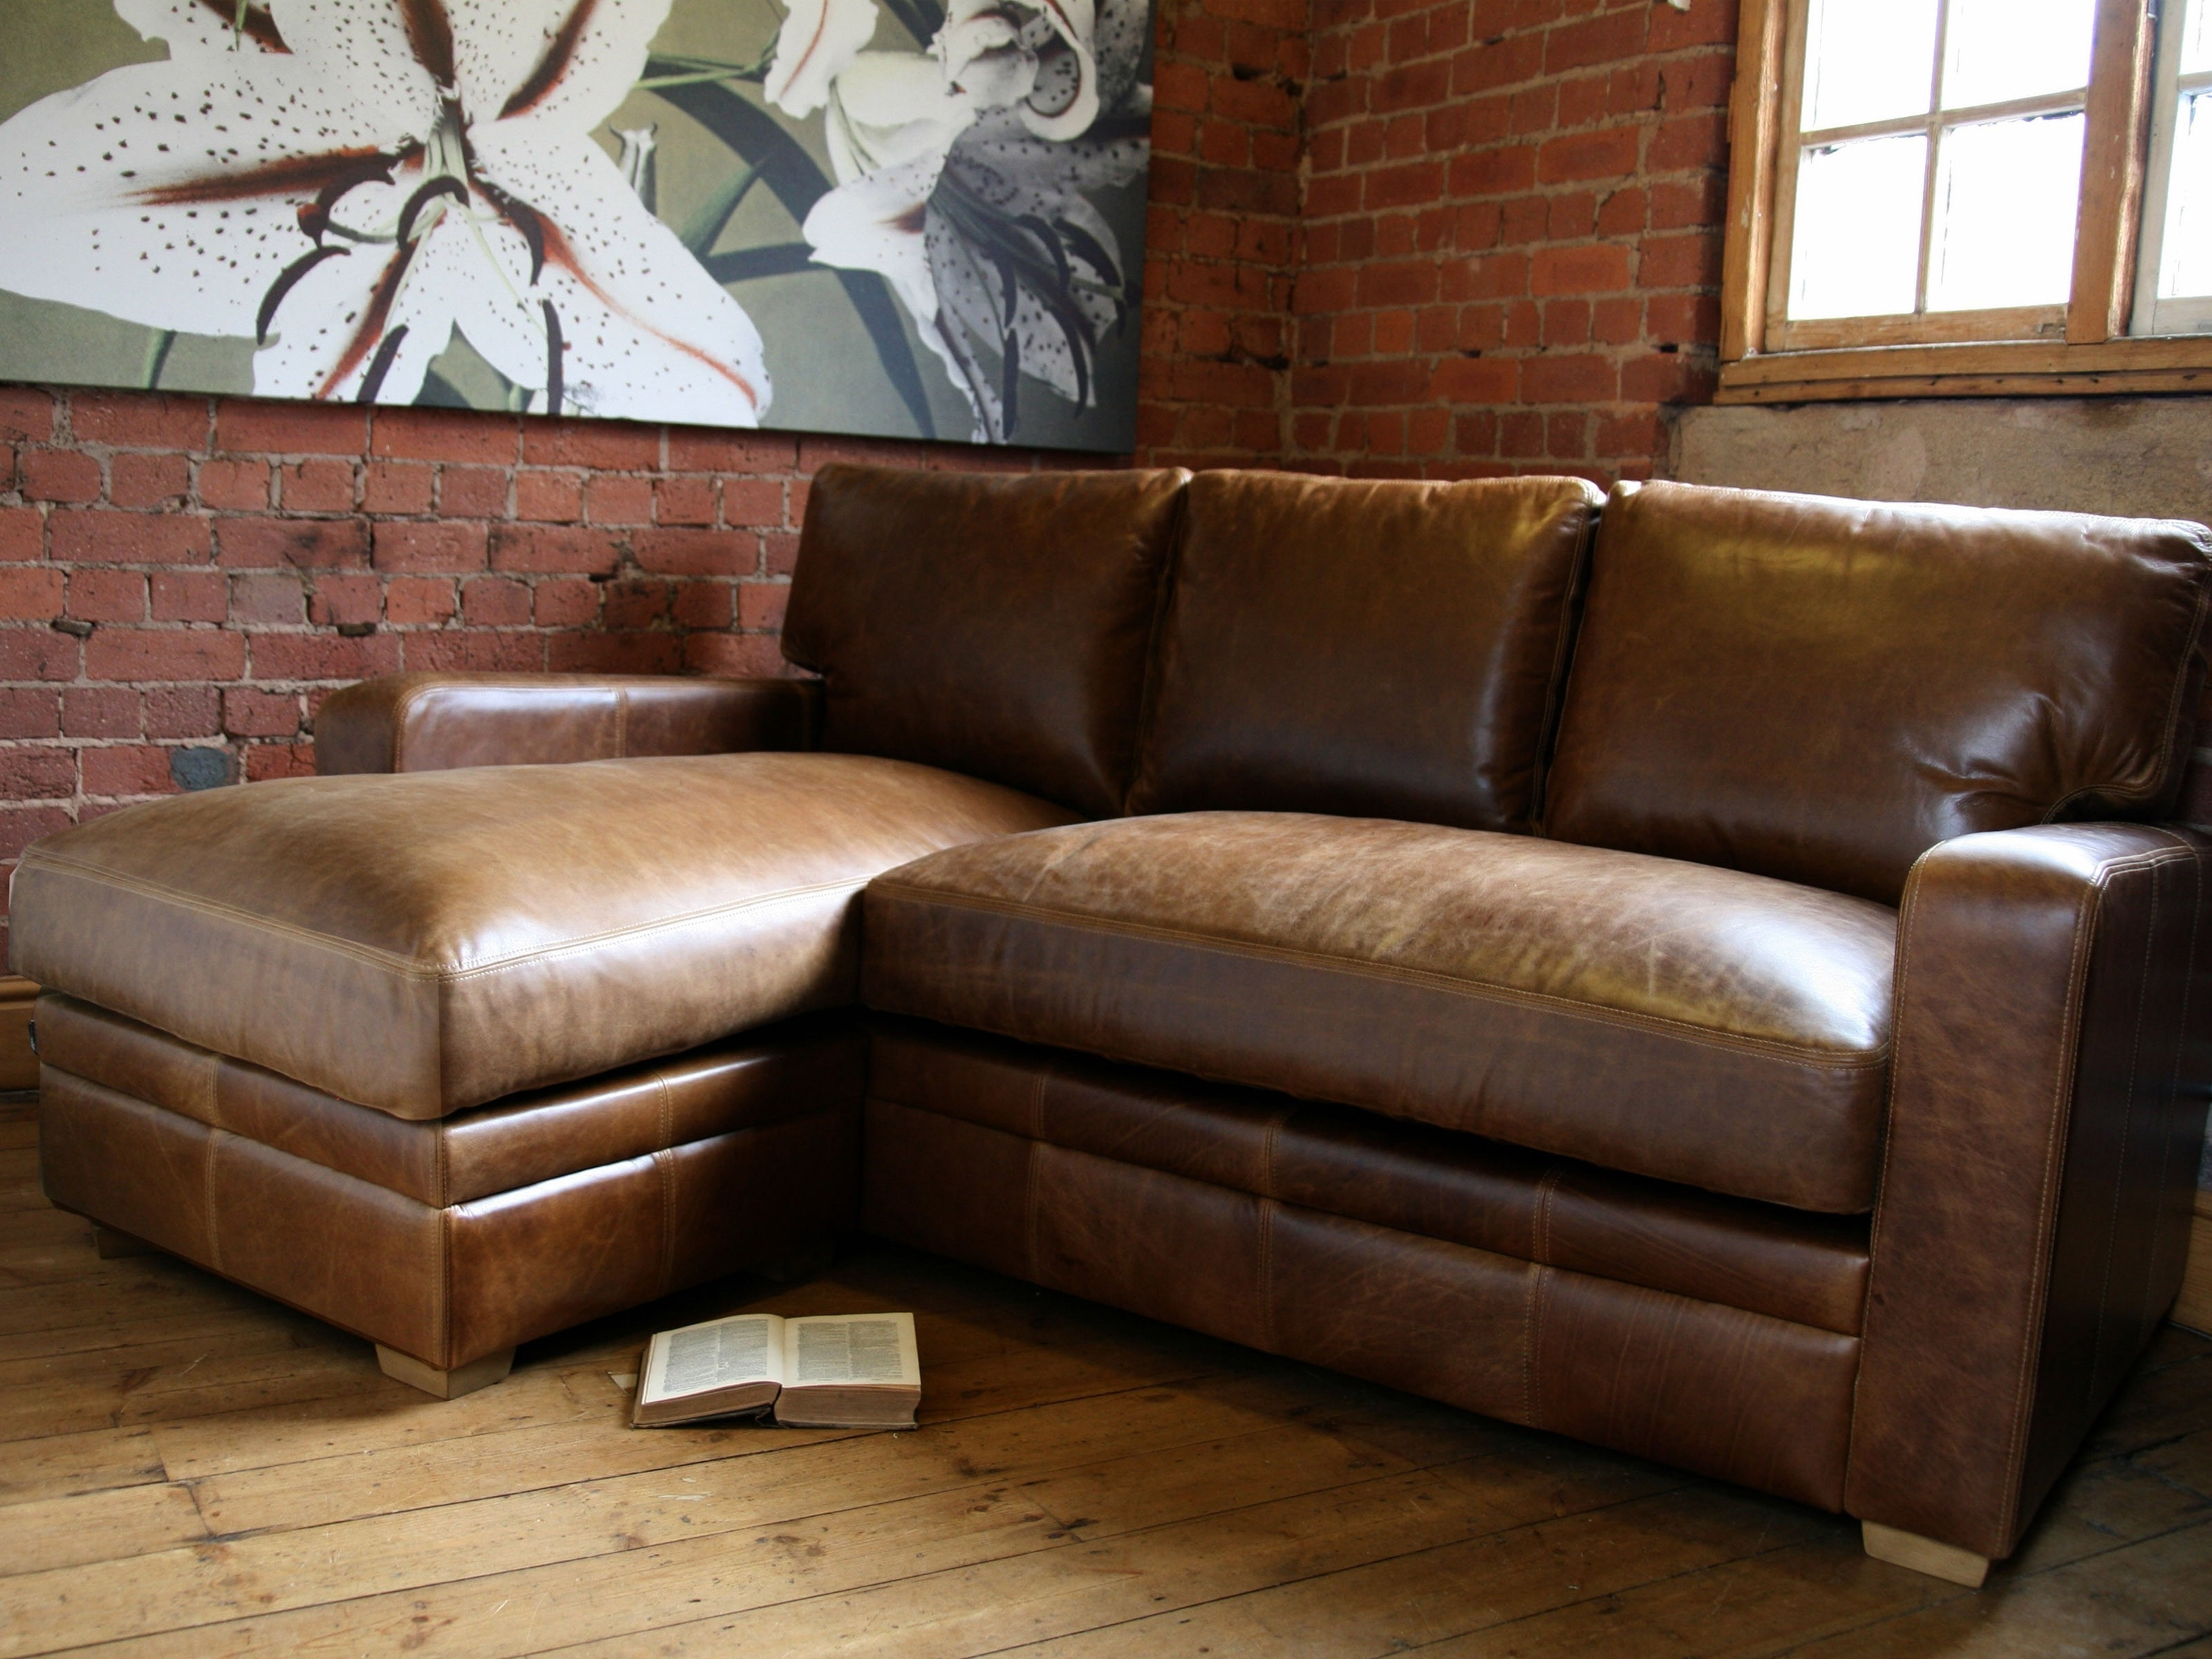 Chaise Lounge Sofas For Sale With Most Up To Date Sofa ~ Luxury Leather Sofa With Chaise Lounge Great Leather Chaise (View 3 of 15)